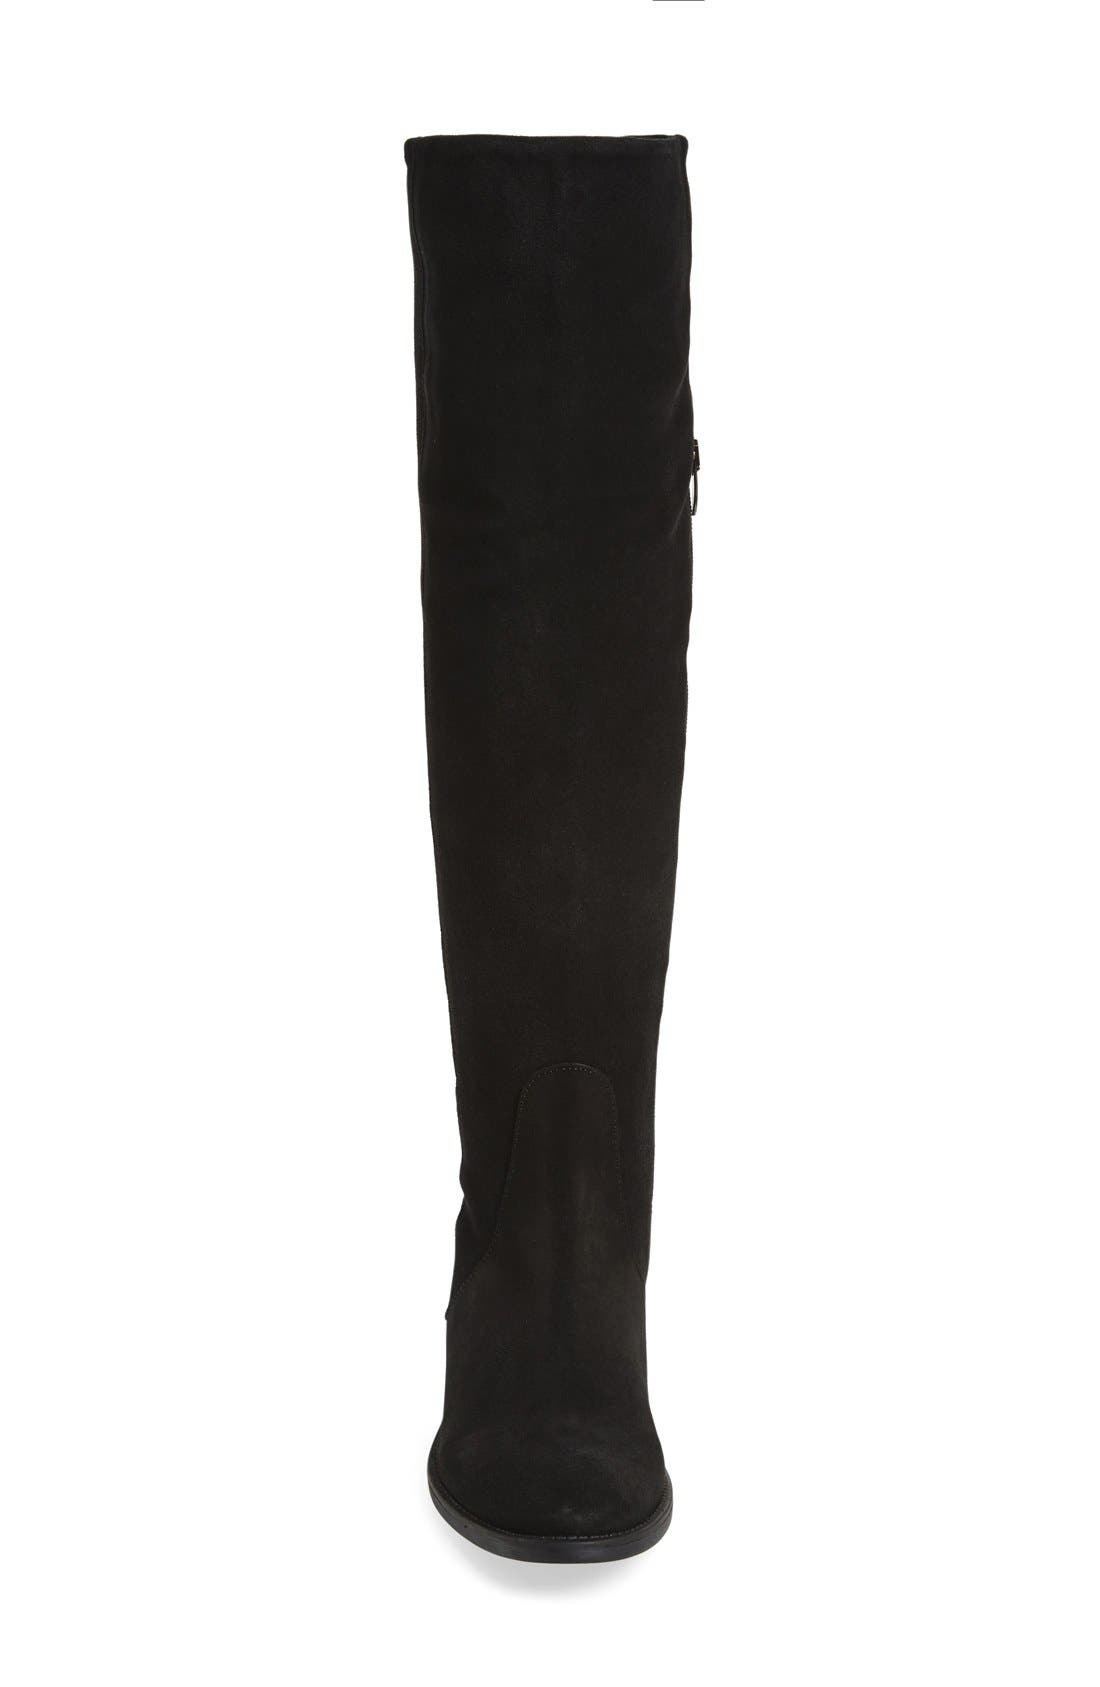 Alternate Image 3  - Toni Pons 'Tallin' Over-The-Knee Riding Boot (Women)